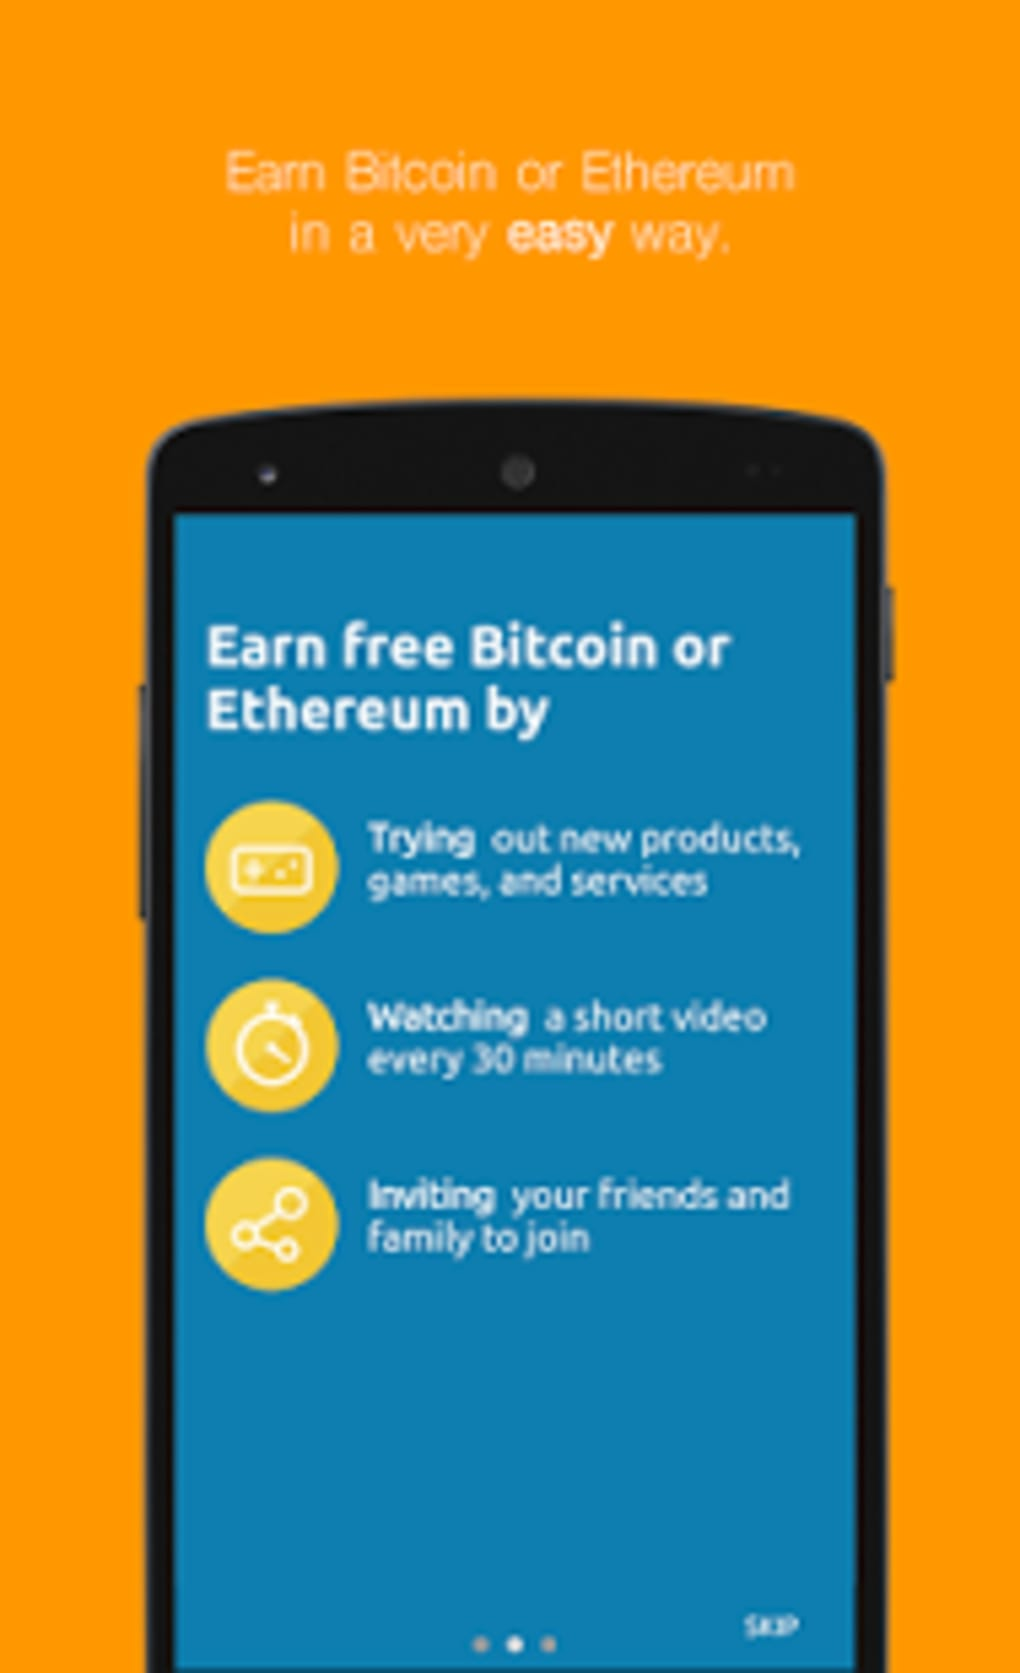 BitMaker Free Bitcoin/Ethereum APK for Android - Download